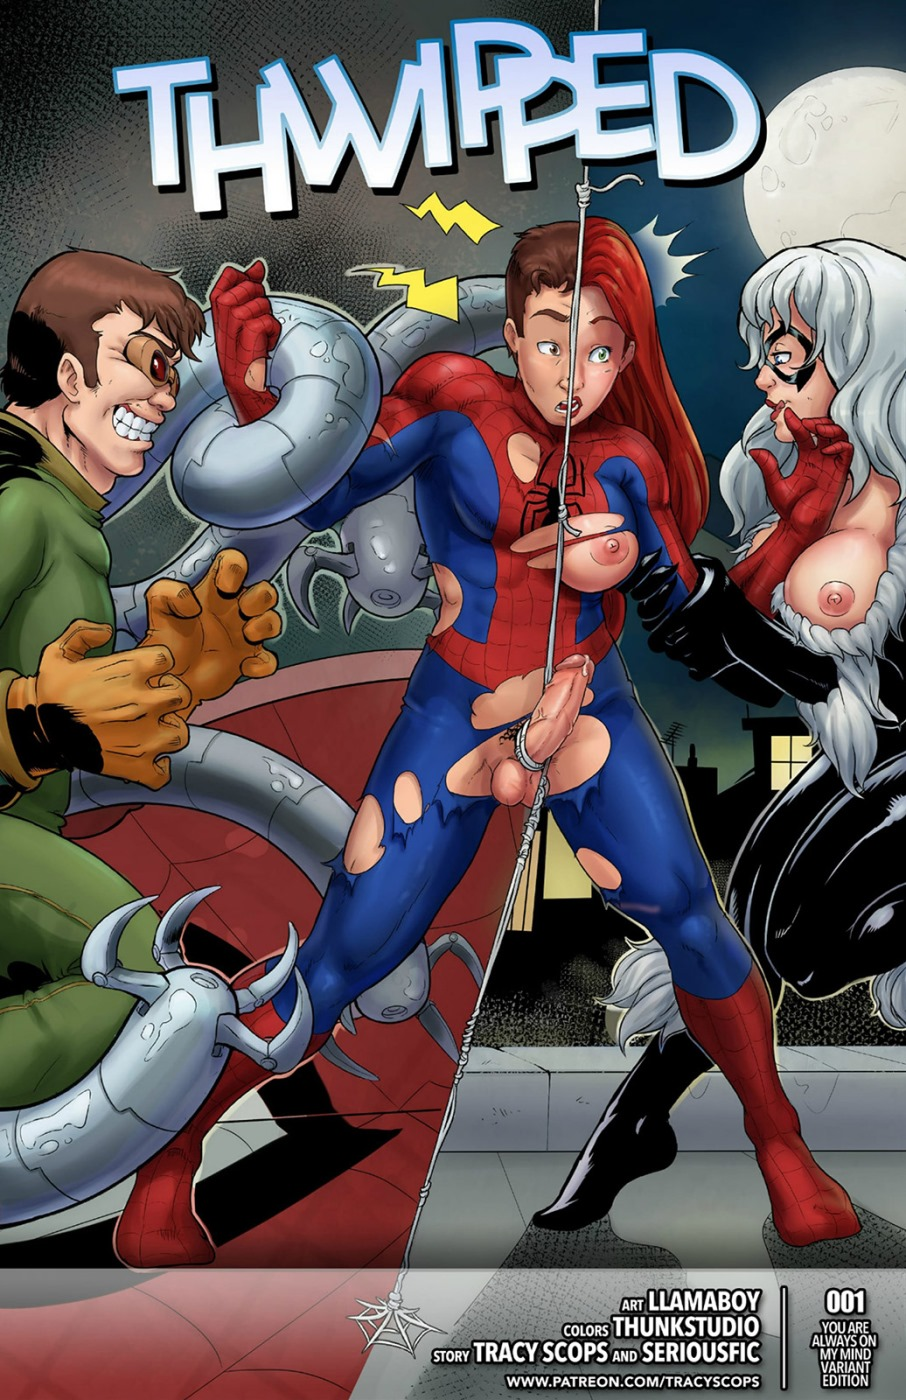 Porn Comics - Spider-Man- Thwipped (Tracy Scops) porn comics 8 muses